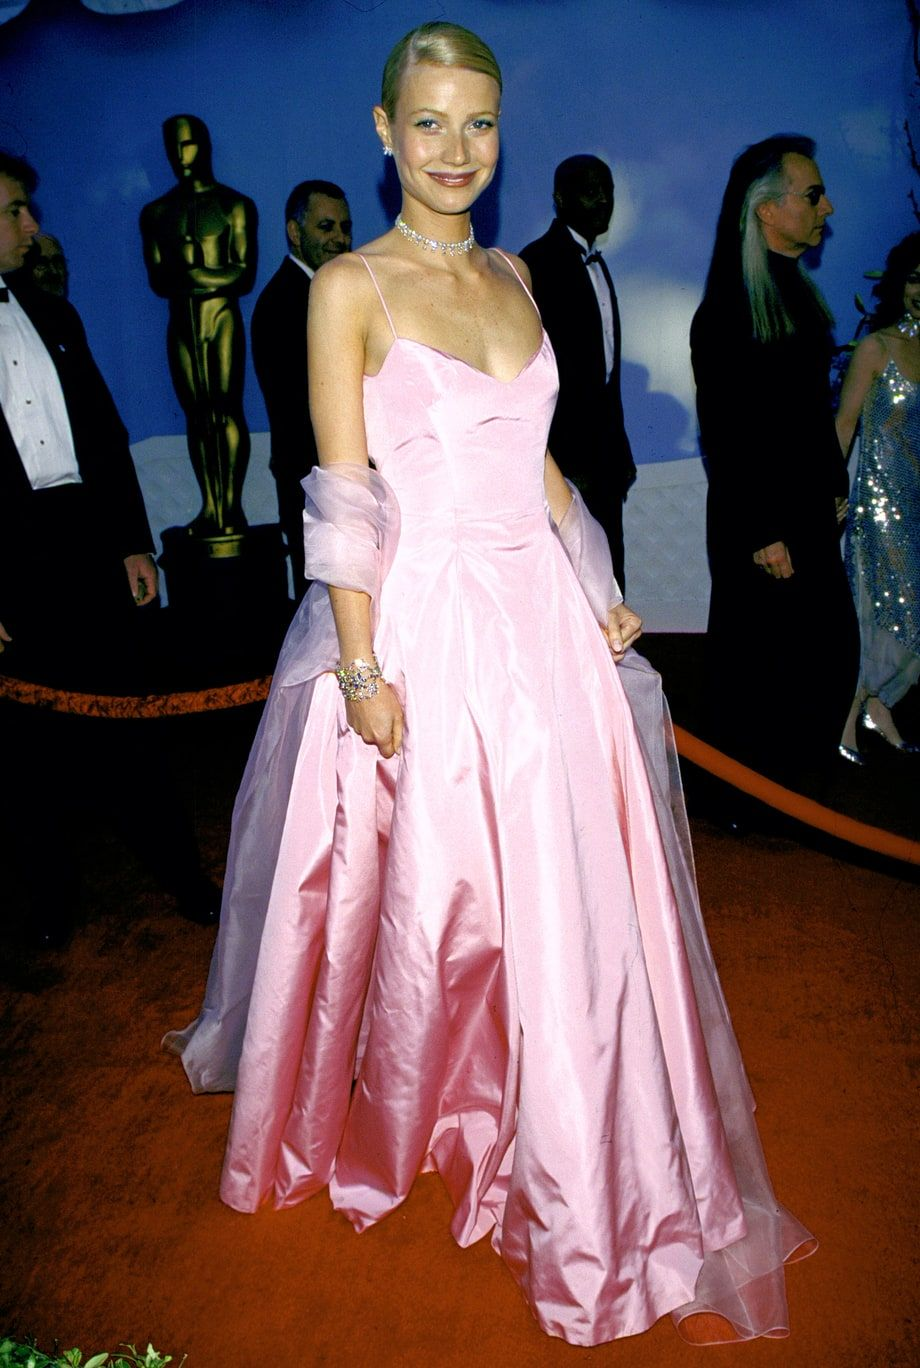 Gwyneth Paltrow sporting pink dress by Ralph Lauren at Oscar's red carpet